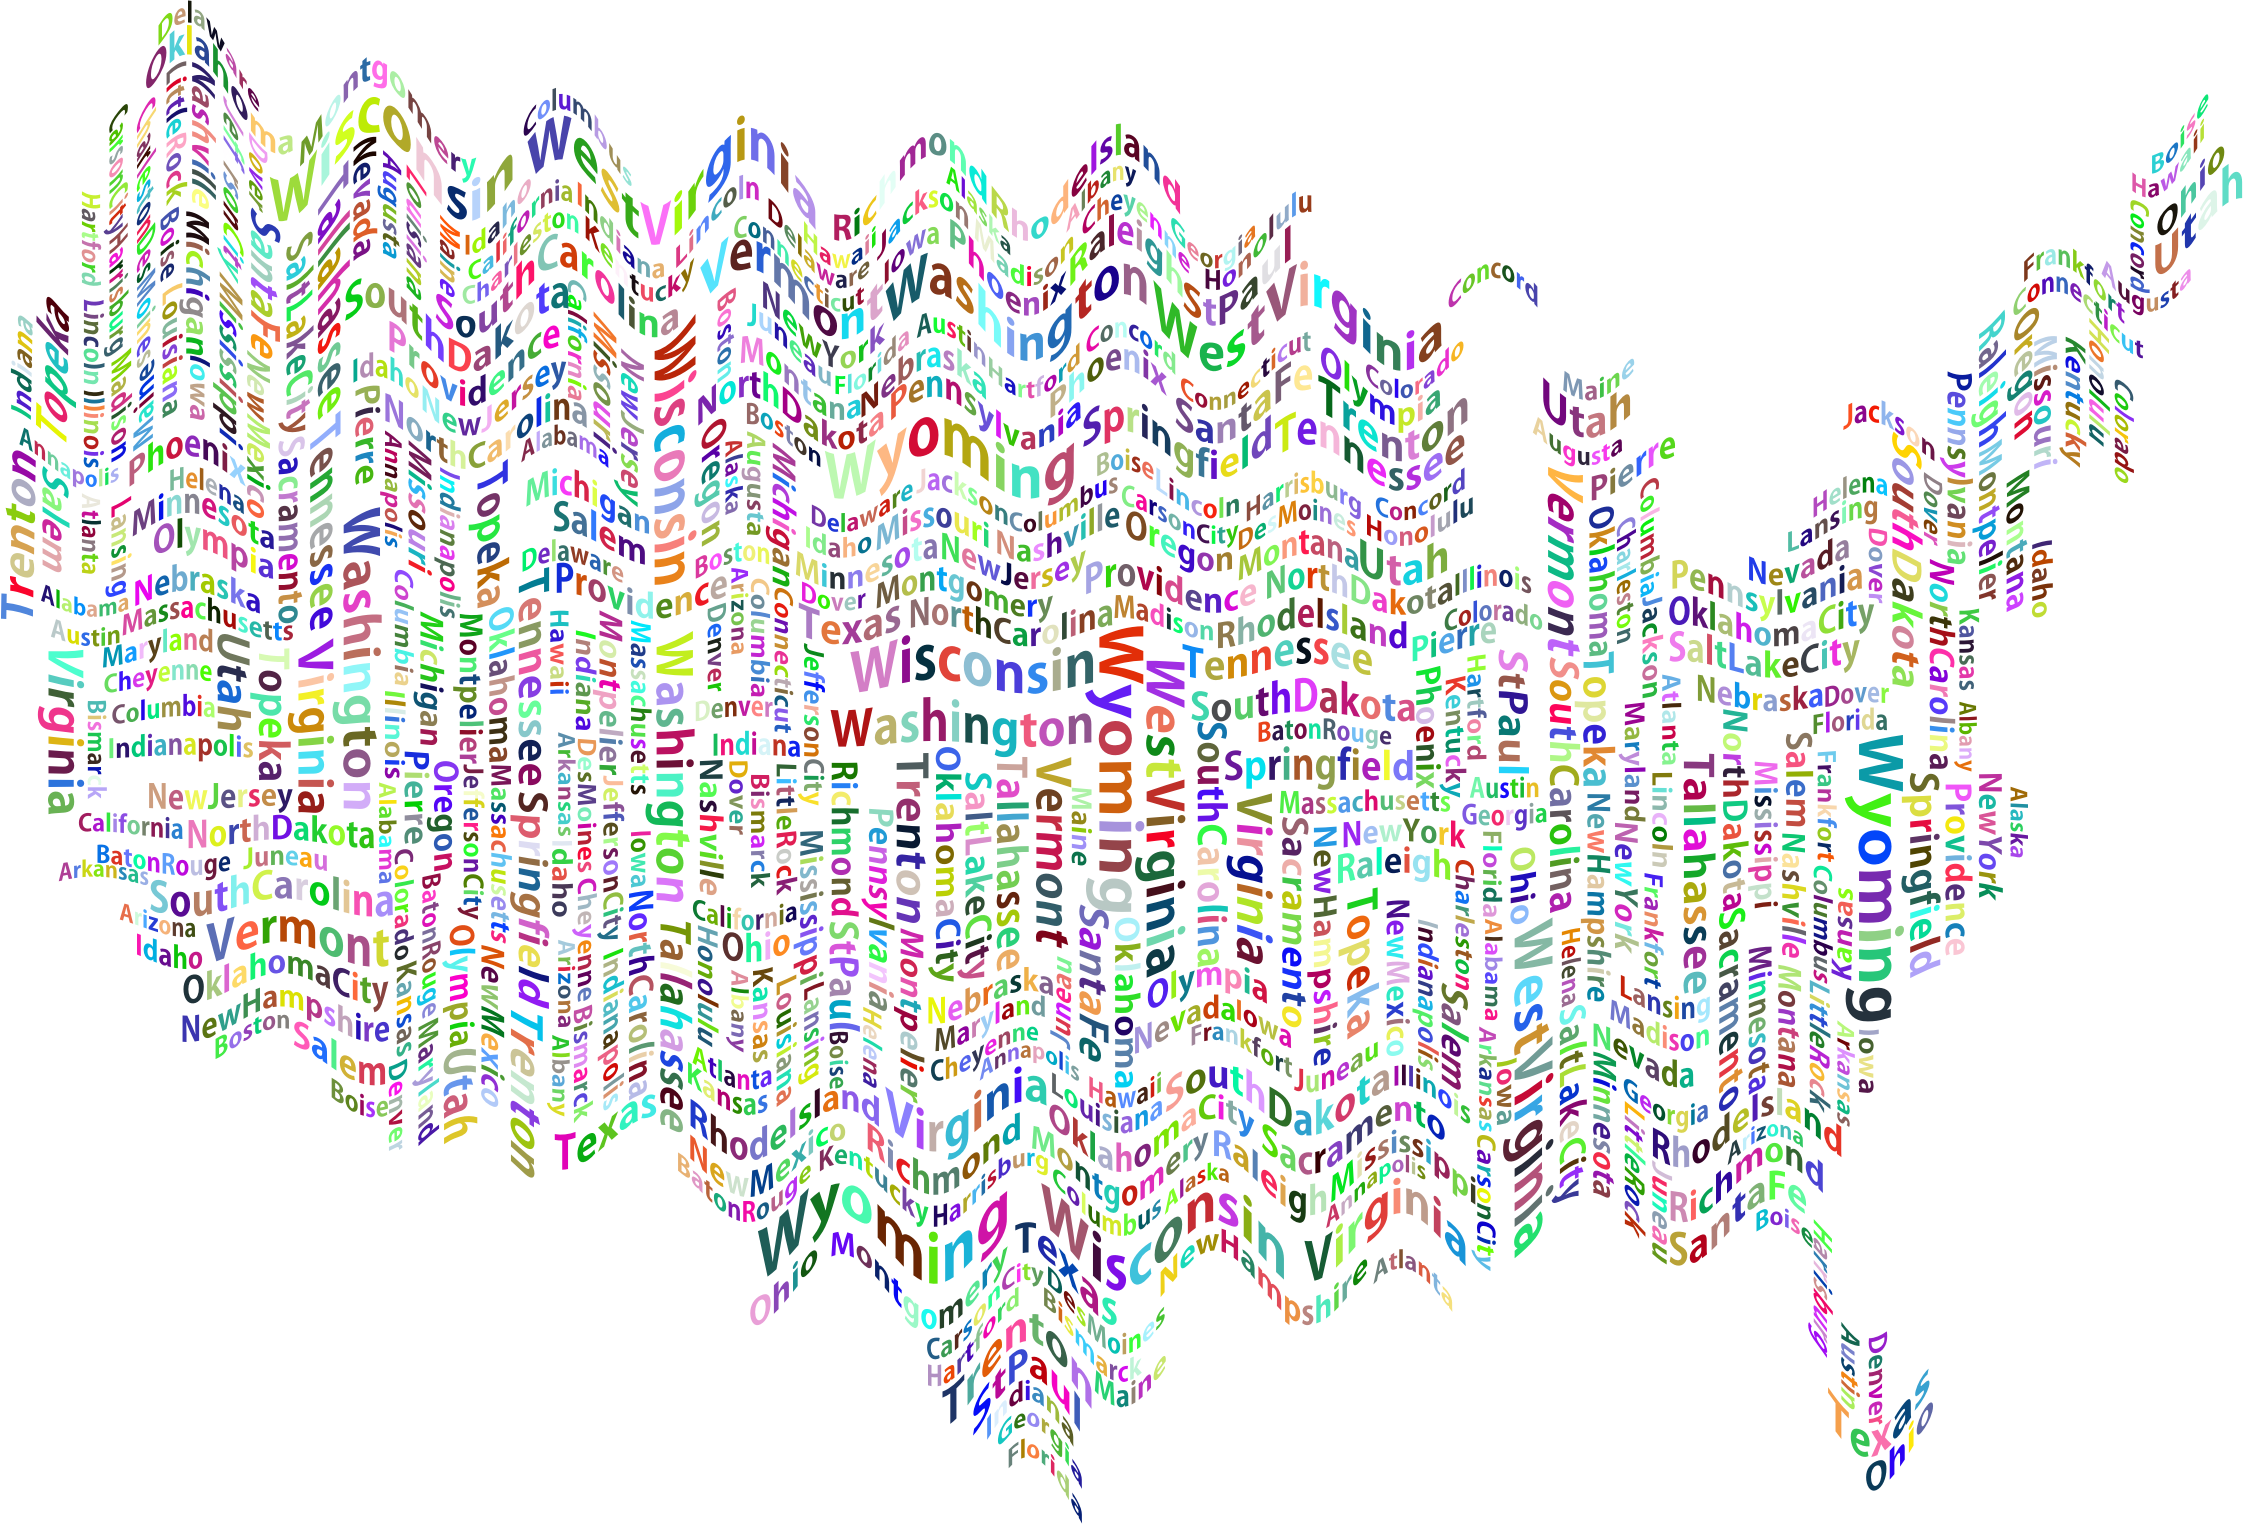 United states clipart background. Prismatic ripples america and